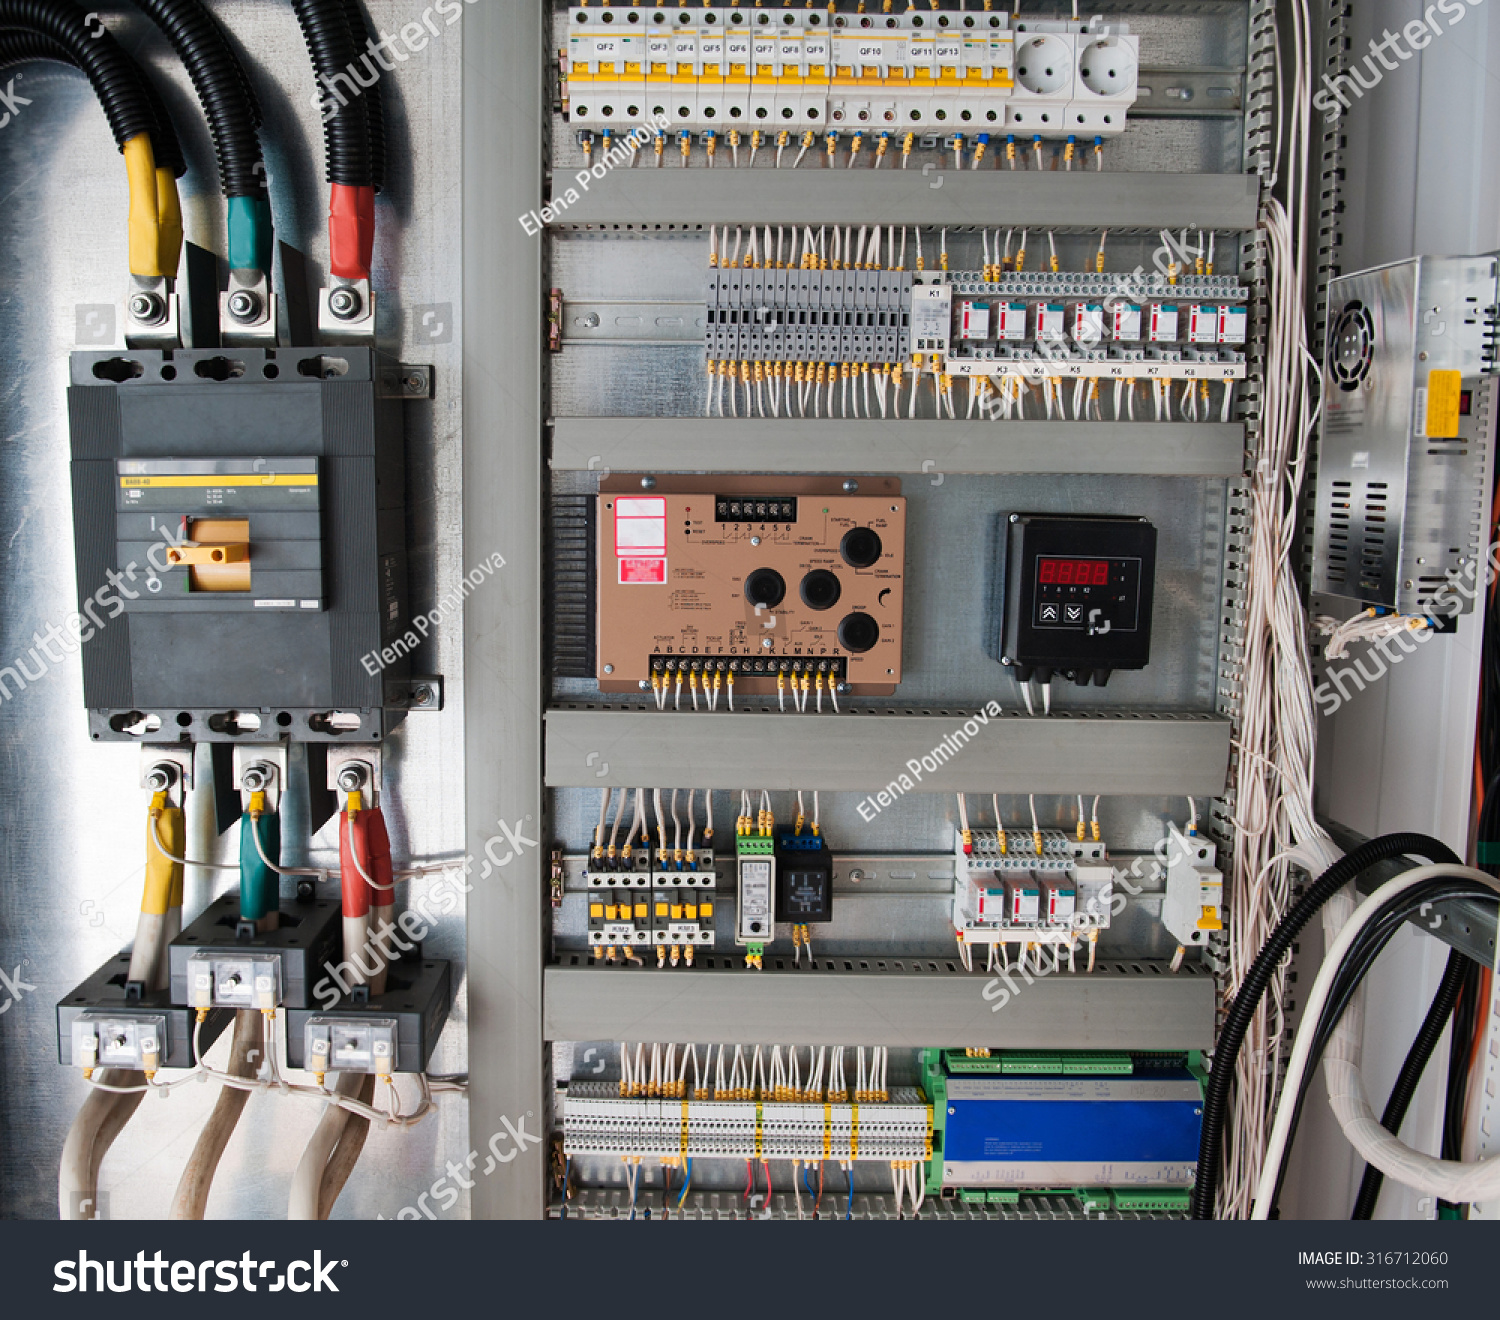 Delighted Fender S1 Switch Wiring Diagram Tiny Electric Guitar Jack Wiring Regular Jbs Technologies Remote Starter Guitar 5 Way Switch Wiring Old 2 Humbucker 5 Way Switch Wiring Soft3 Way Switch Guitar Control Panel Static Energy Meters Circuitbreakers Stock Photo ..